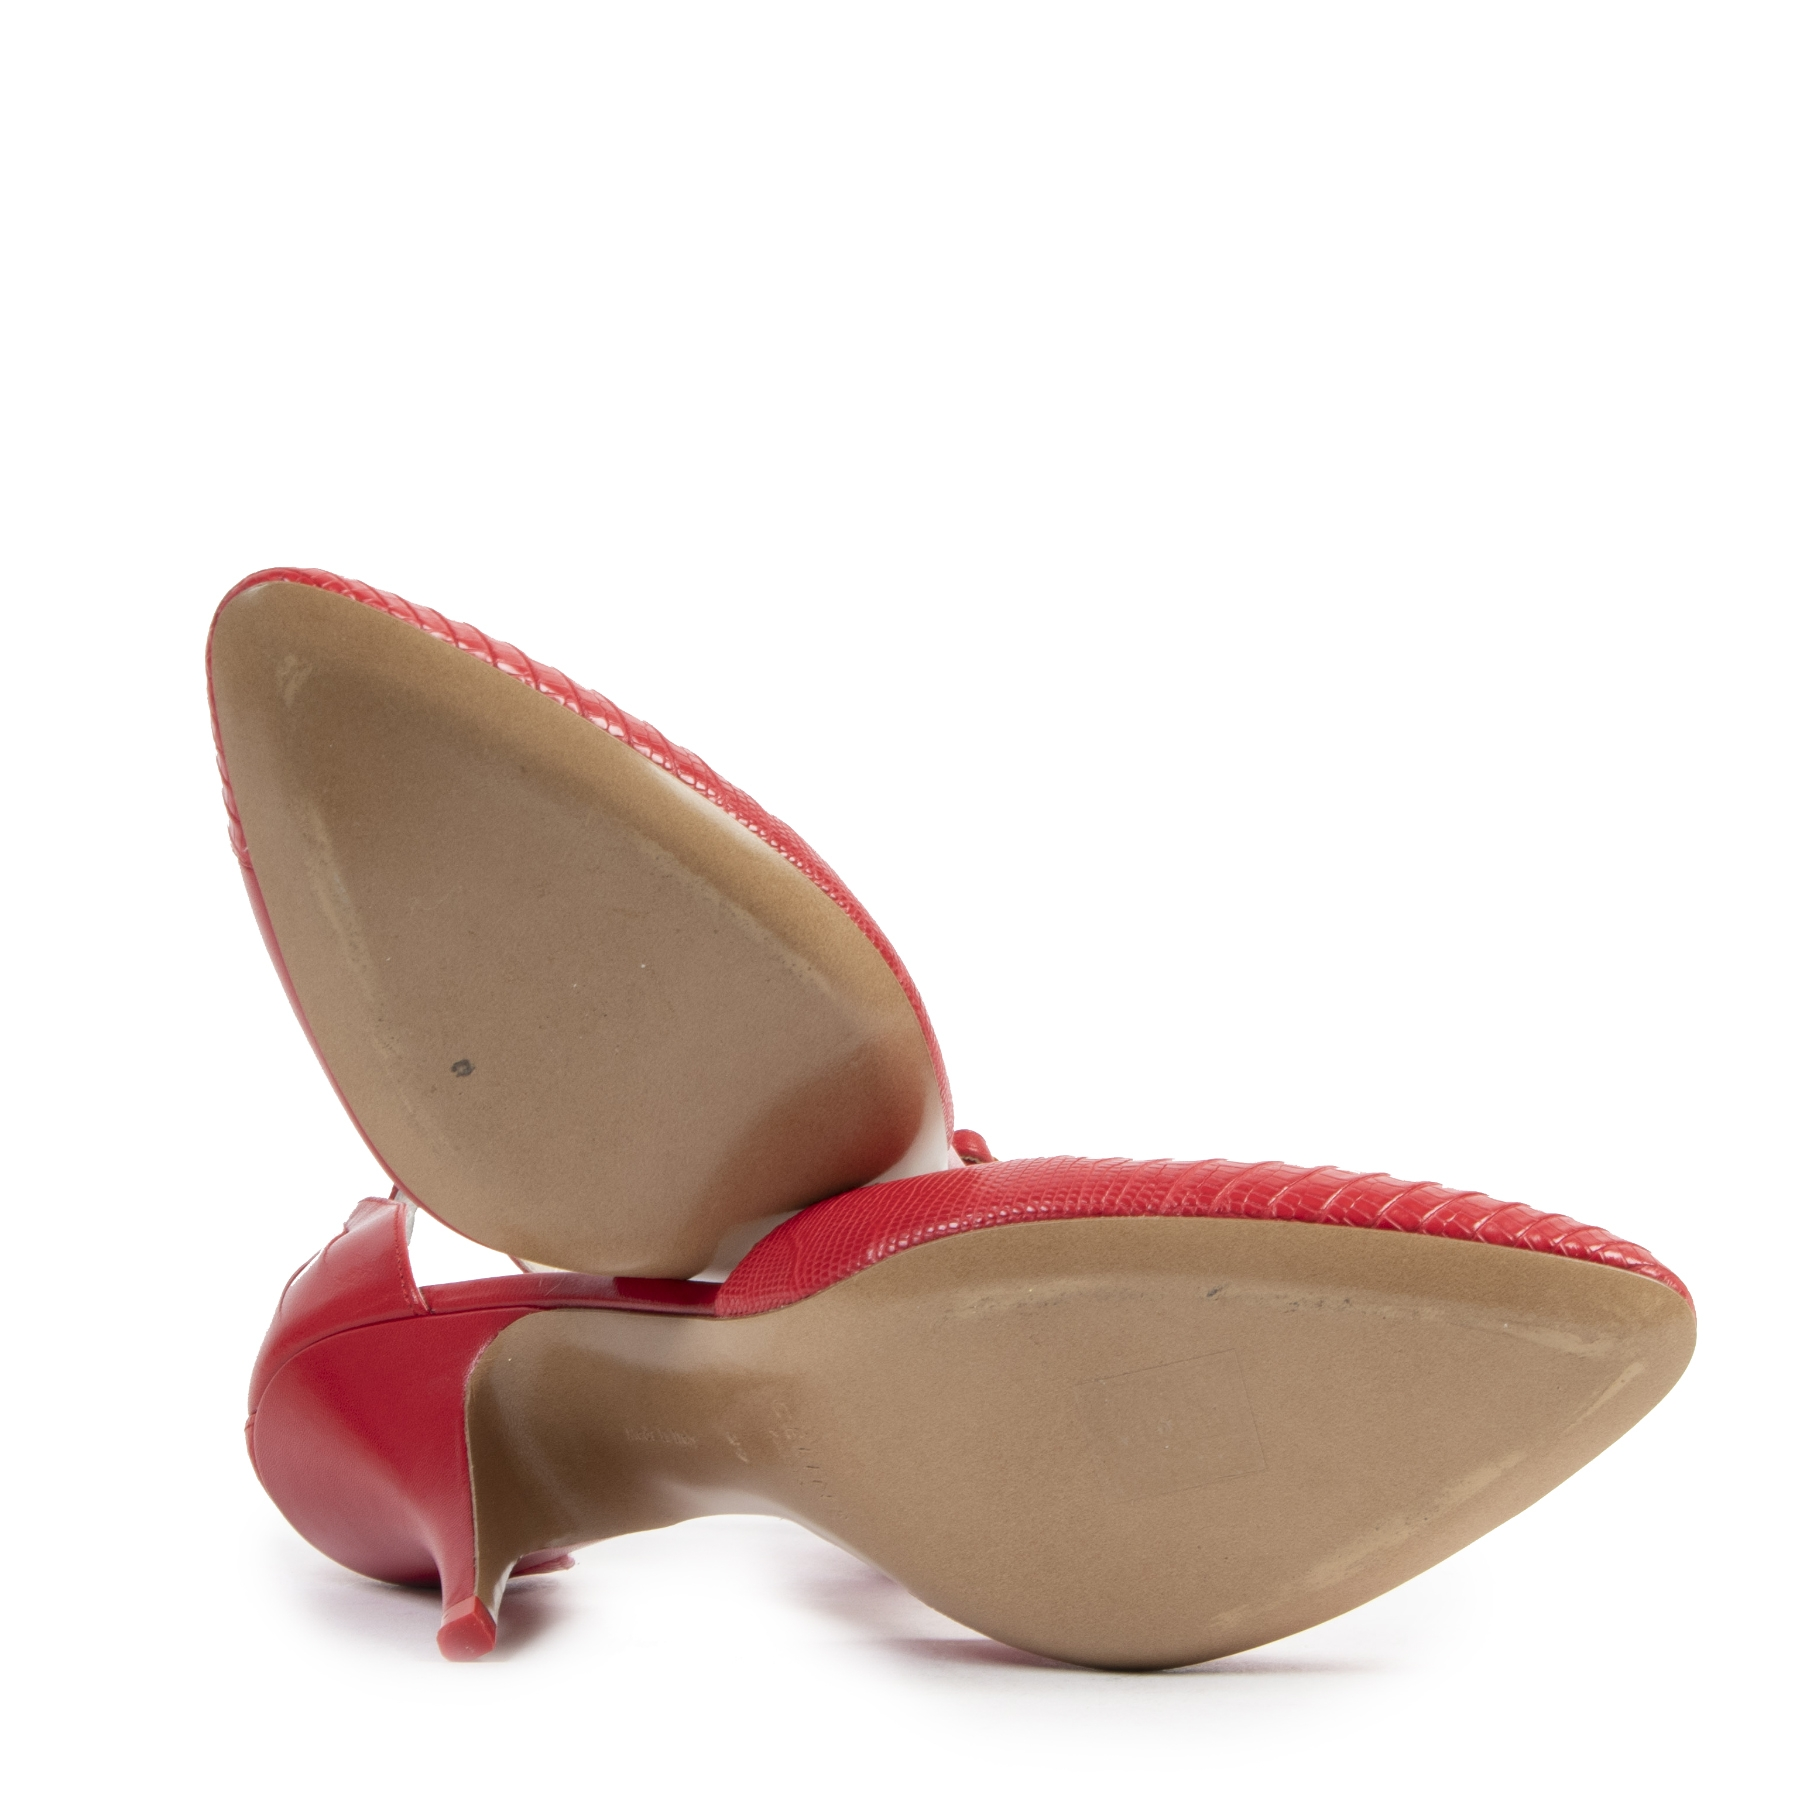 Authentieke tweedehands vintage Céline Red Leather Pumps - Size 39 koop online webshop LabelLOV